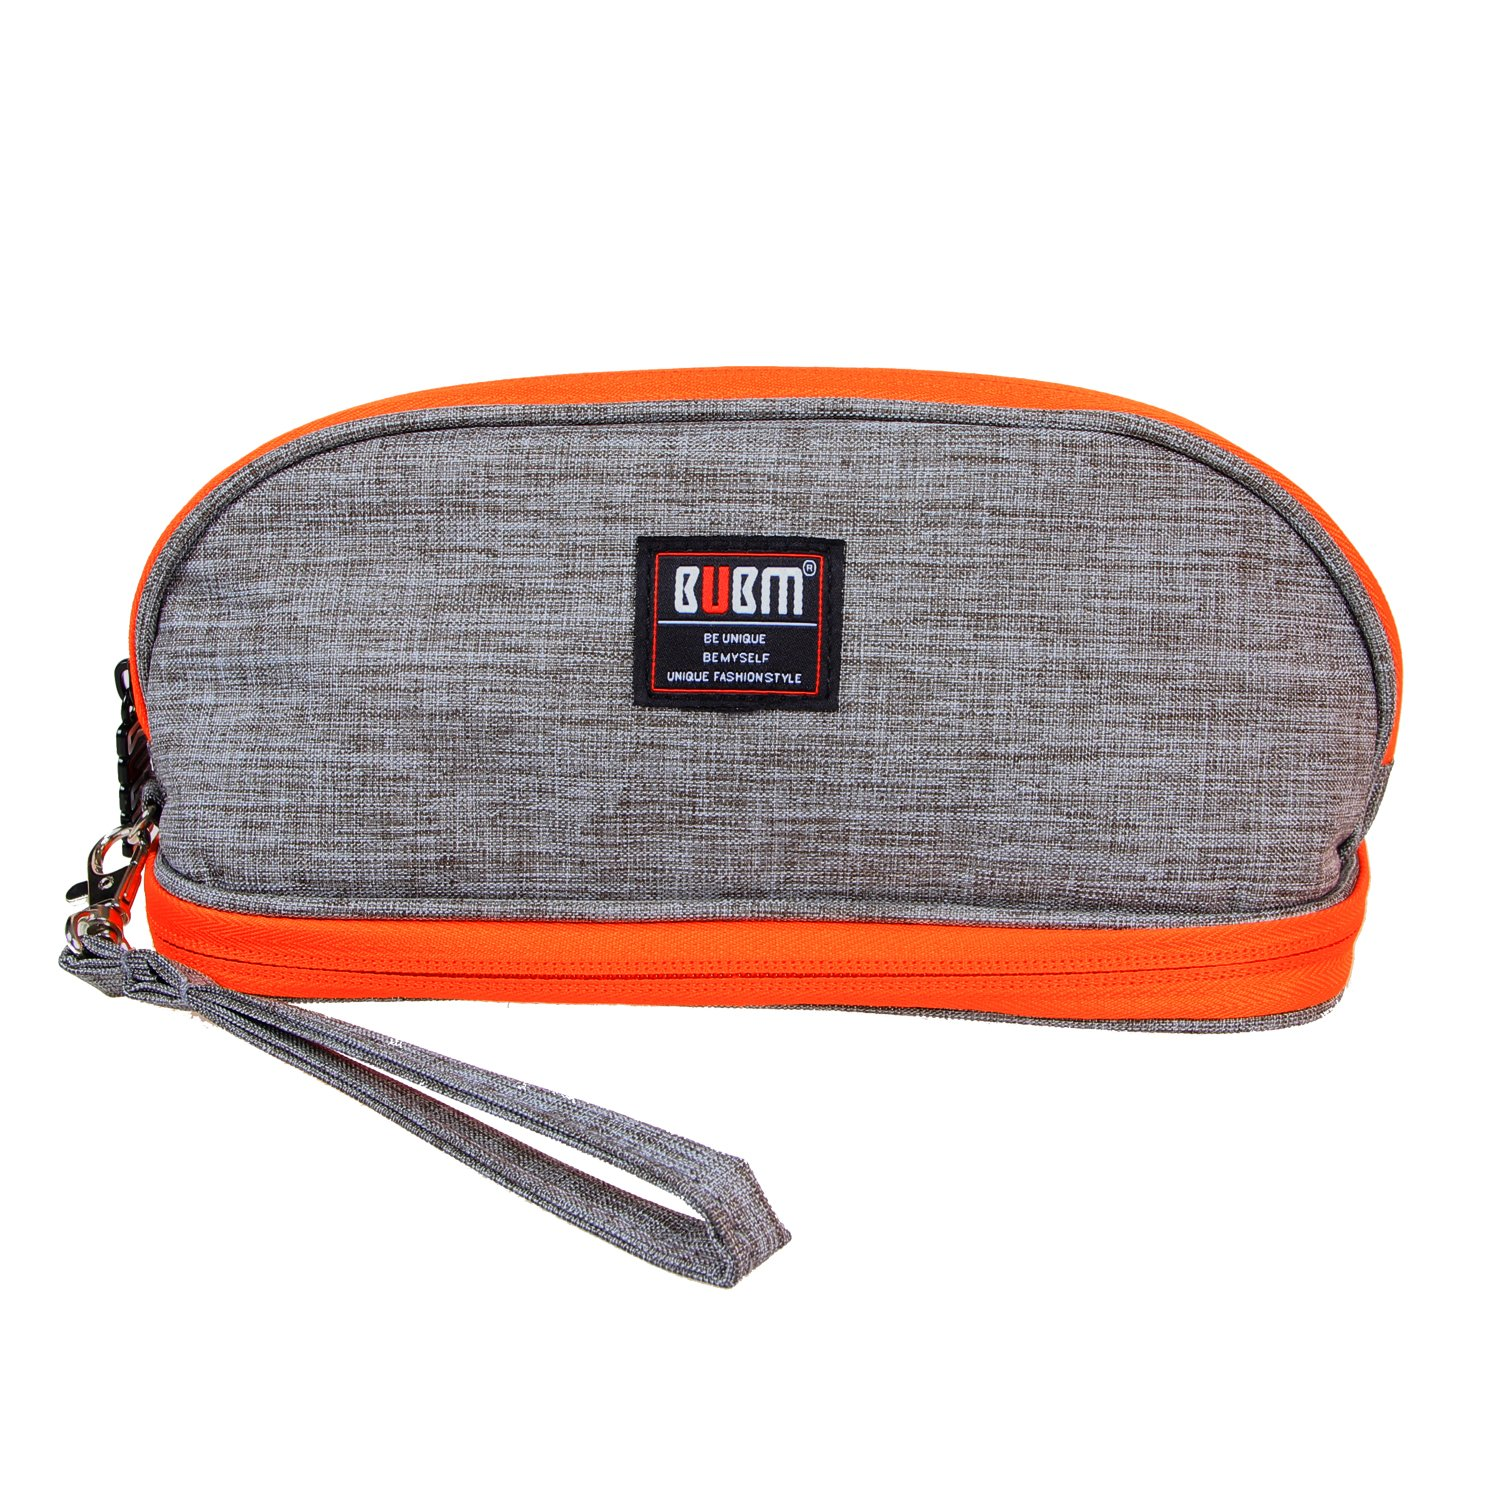 BUBM Makeup Bag, Portable Travel Carry Bag Organizer with Handle for Women Cosmetics and Toiletry Kits, Compact and Lightweight, Easy to Carry( Gray and Orange)